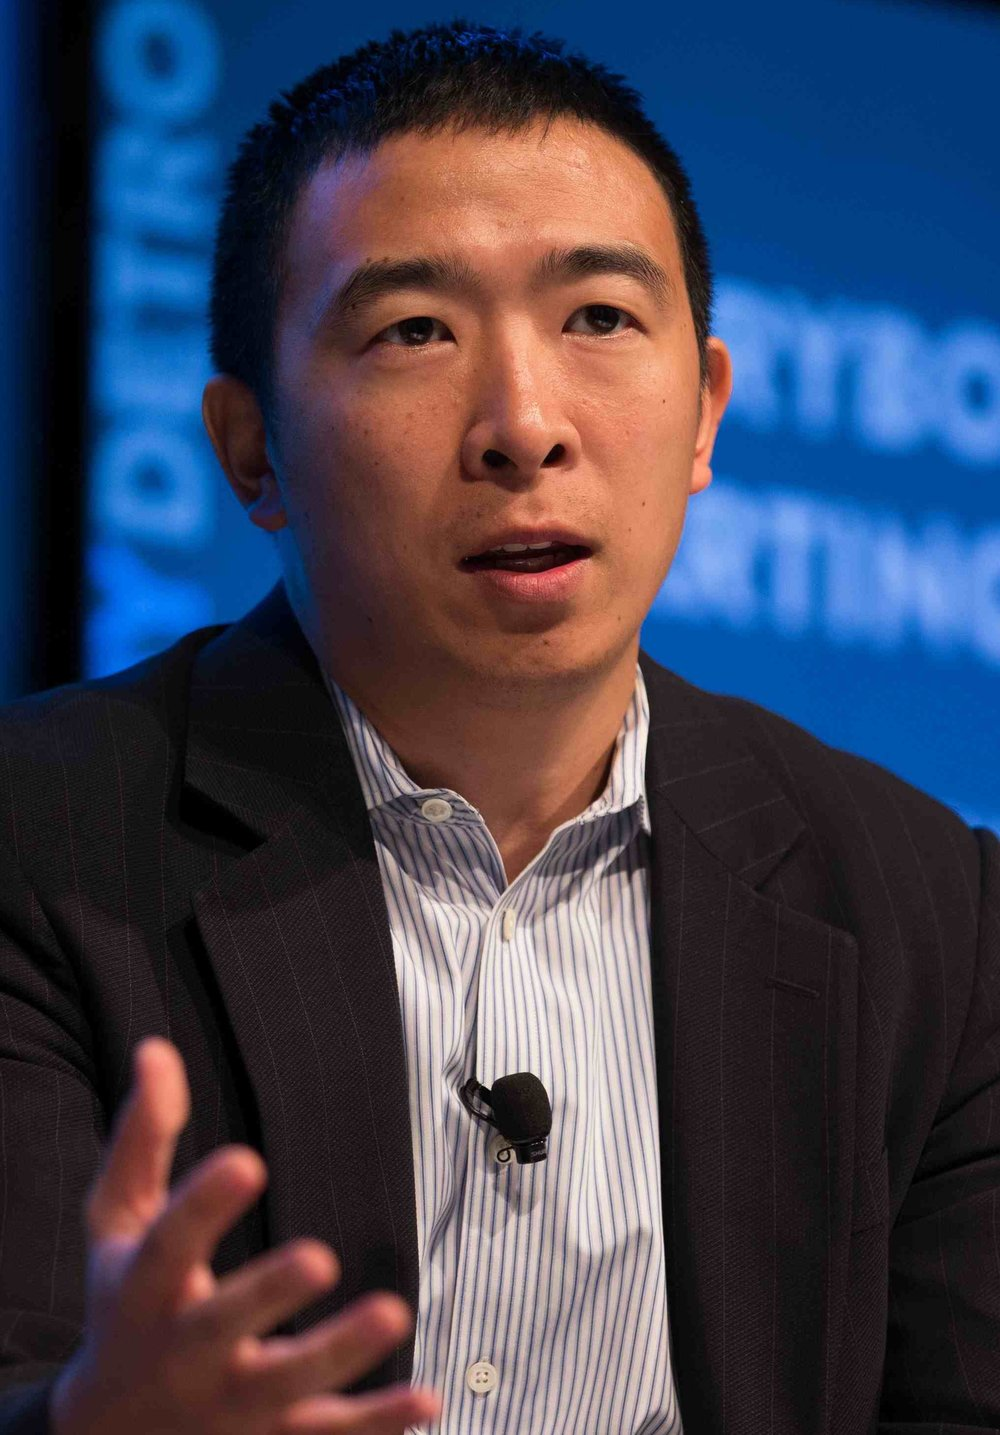 Andrew Yang, 2020 presidential candidate. Photo by    Asa Mathat    for Techonomy.